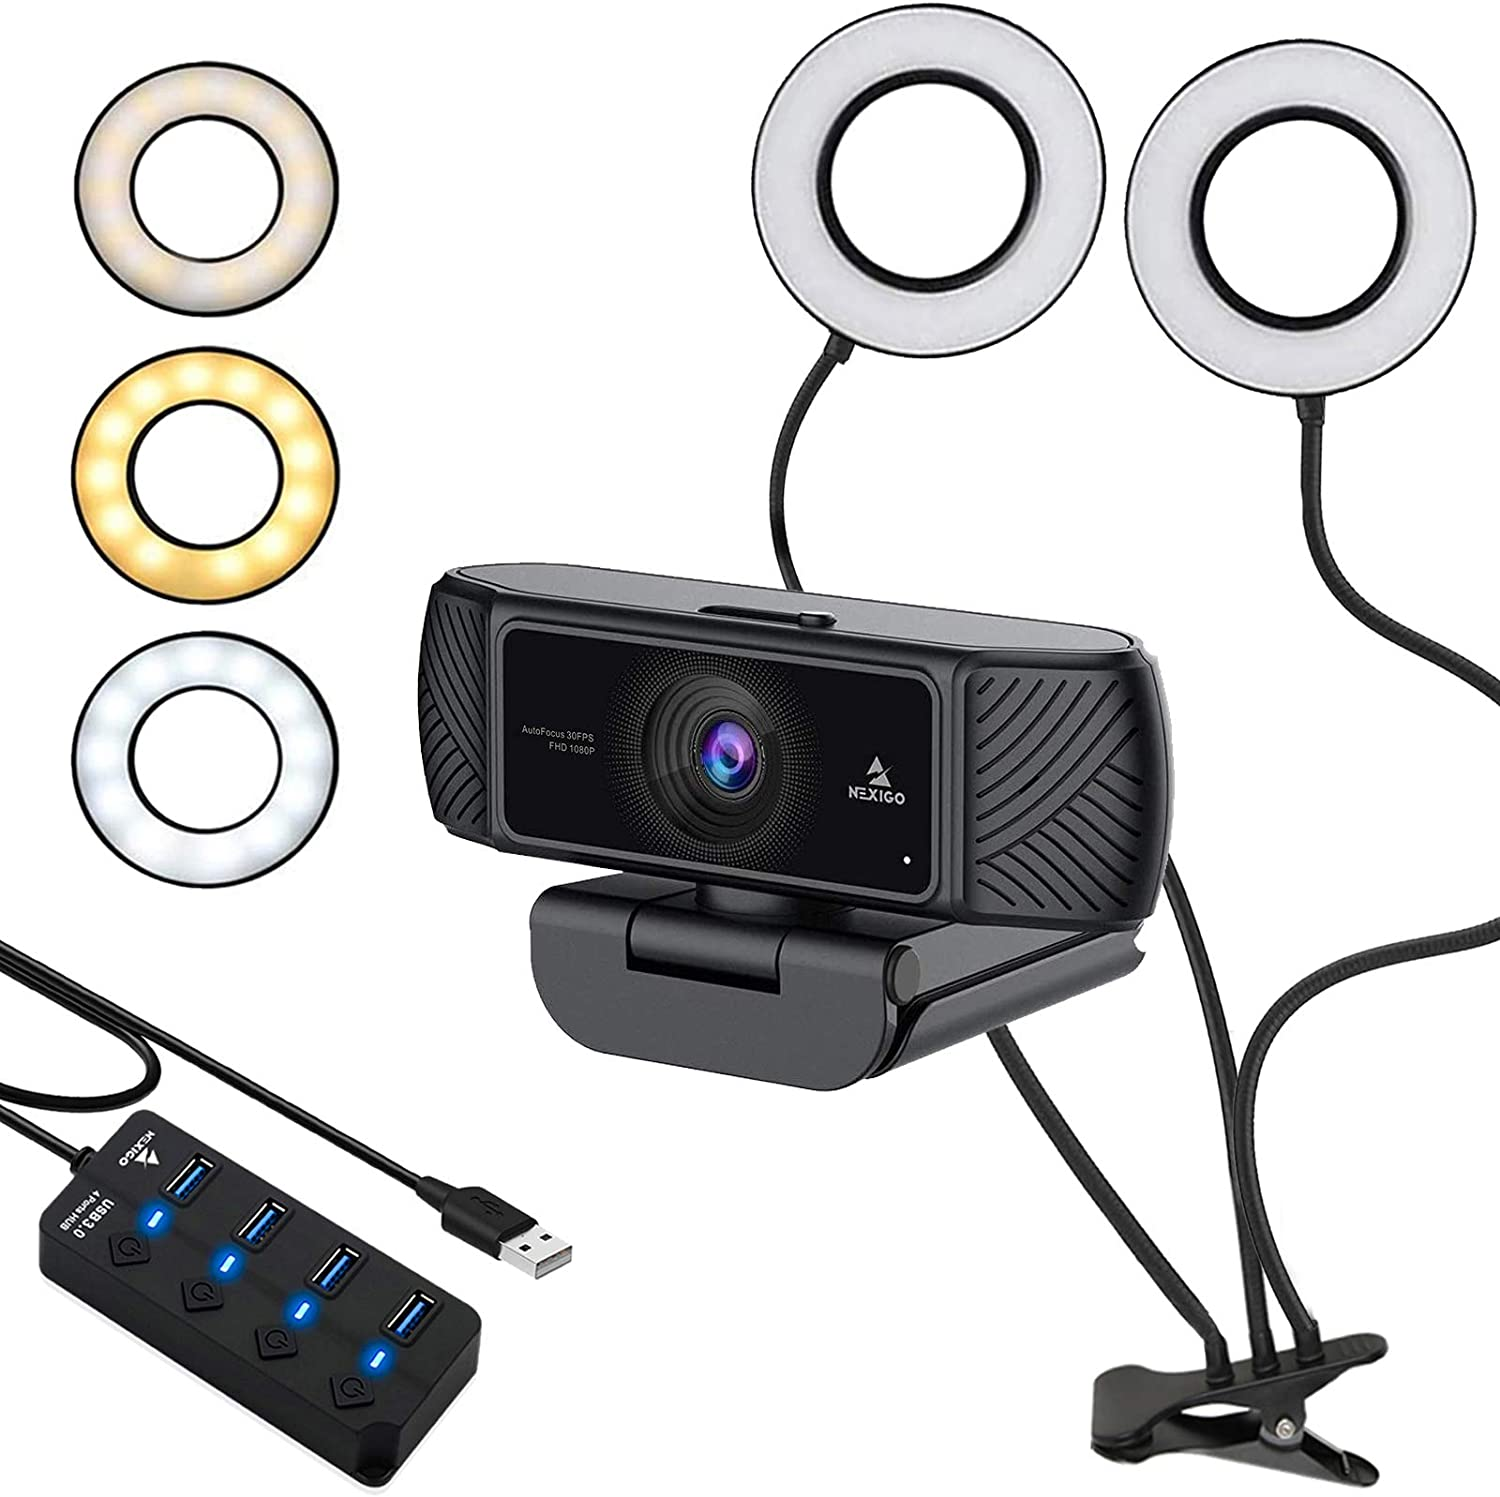 1080P Business Webcam with 2ft USB Hub Switch, Microphone, Dual 3.5 Inch Selfie Ring Light, Mount Stand, and Privacy Cover, for Streaming Online Class, Zoom Skype MS Teams, PC Mac Laptop Desktop